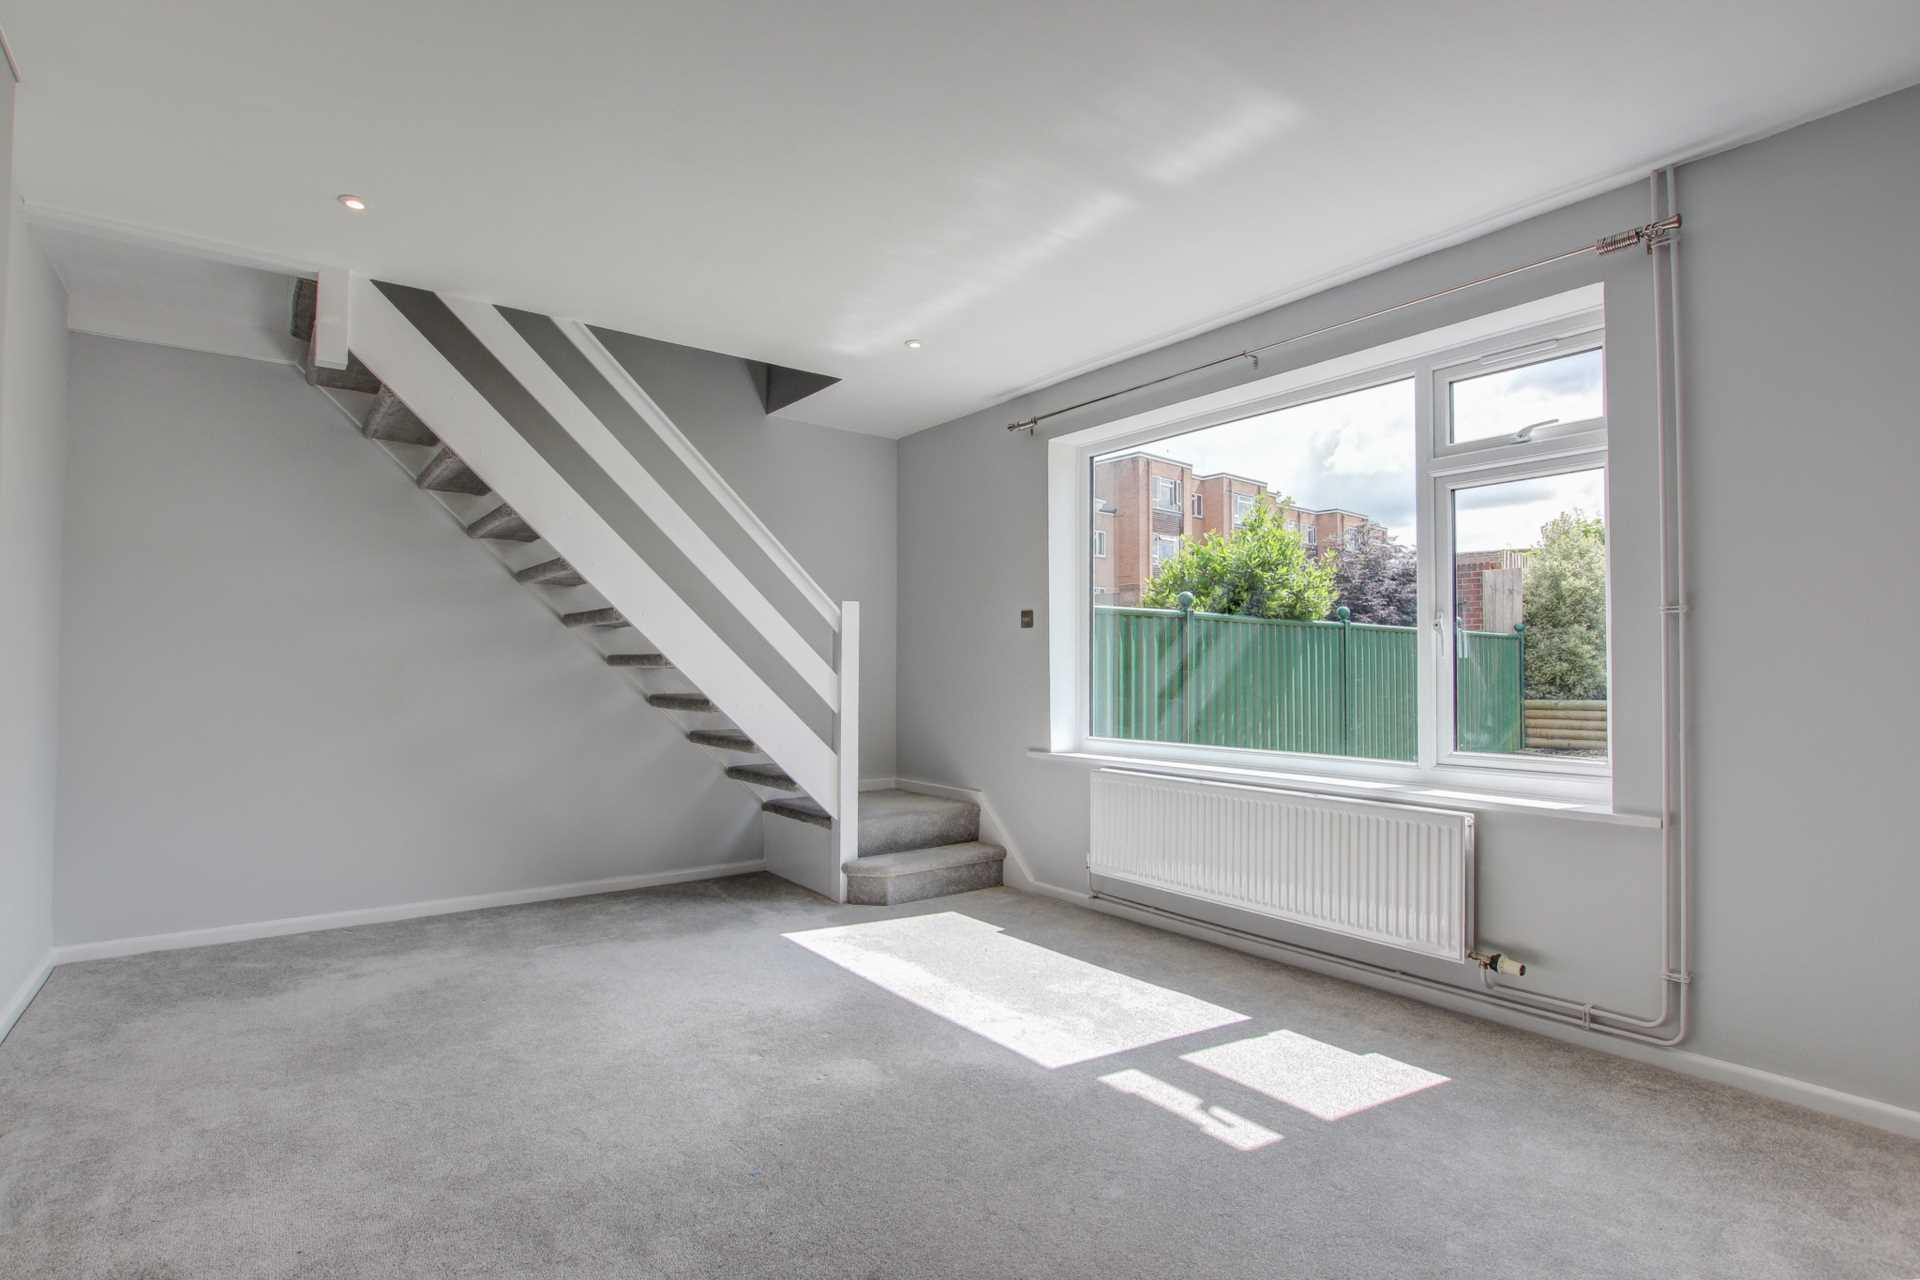 2 bed end of terrace house to rent in Fishers Close, Blandford Forum, Blandford Forum  - Property Image 3